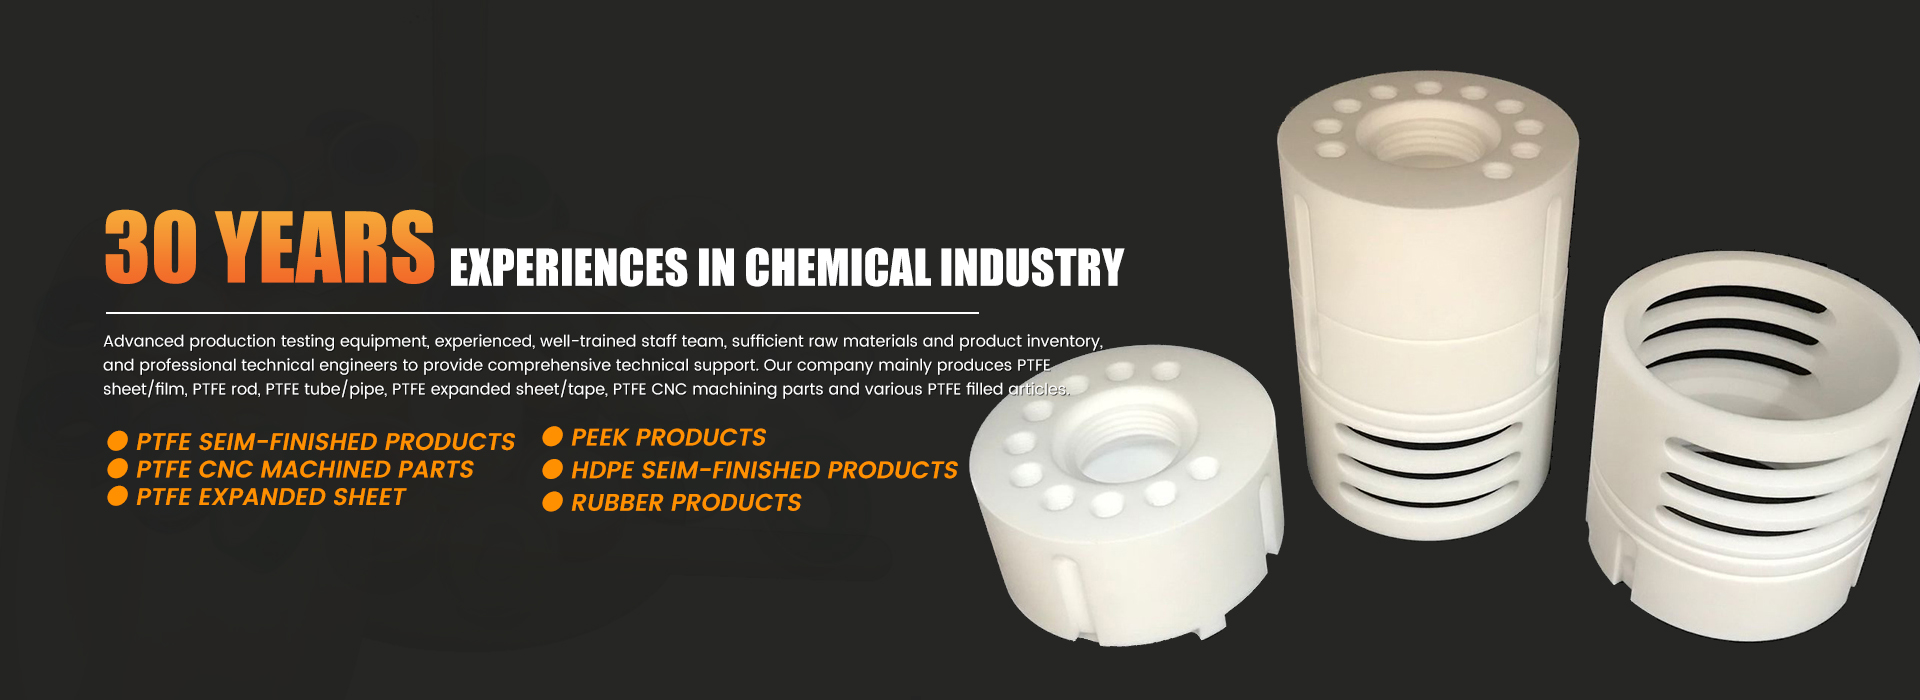 30 Years Experiences Chemical Industry Banner 0102